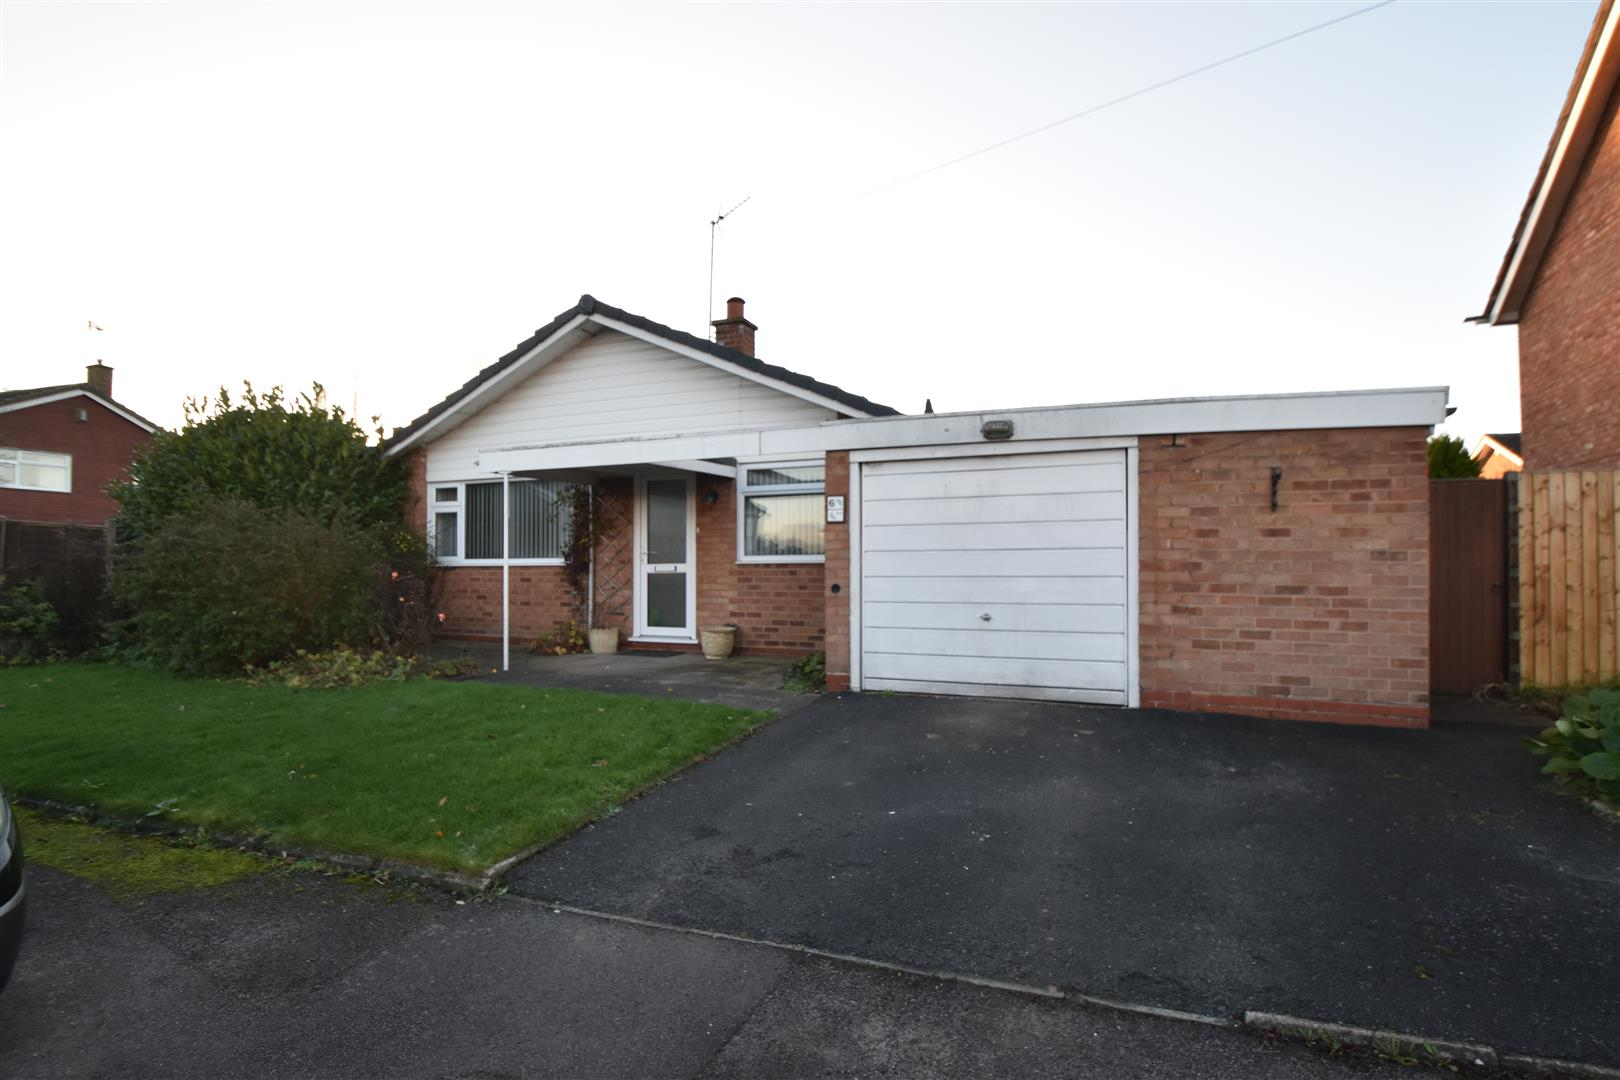 2 Bedrooms Detached Bungalow for sale in Ravenscroft Drive, Droitwich Spa